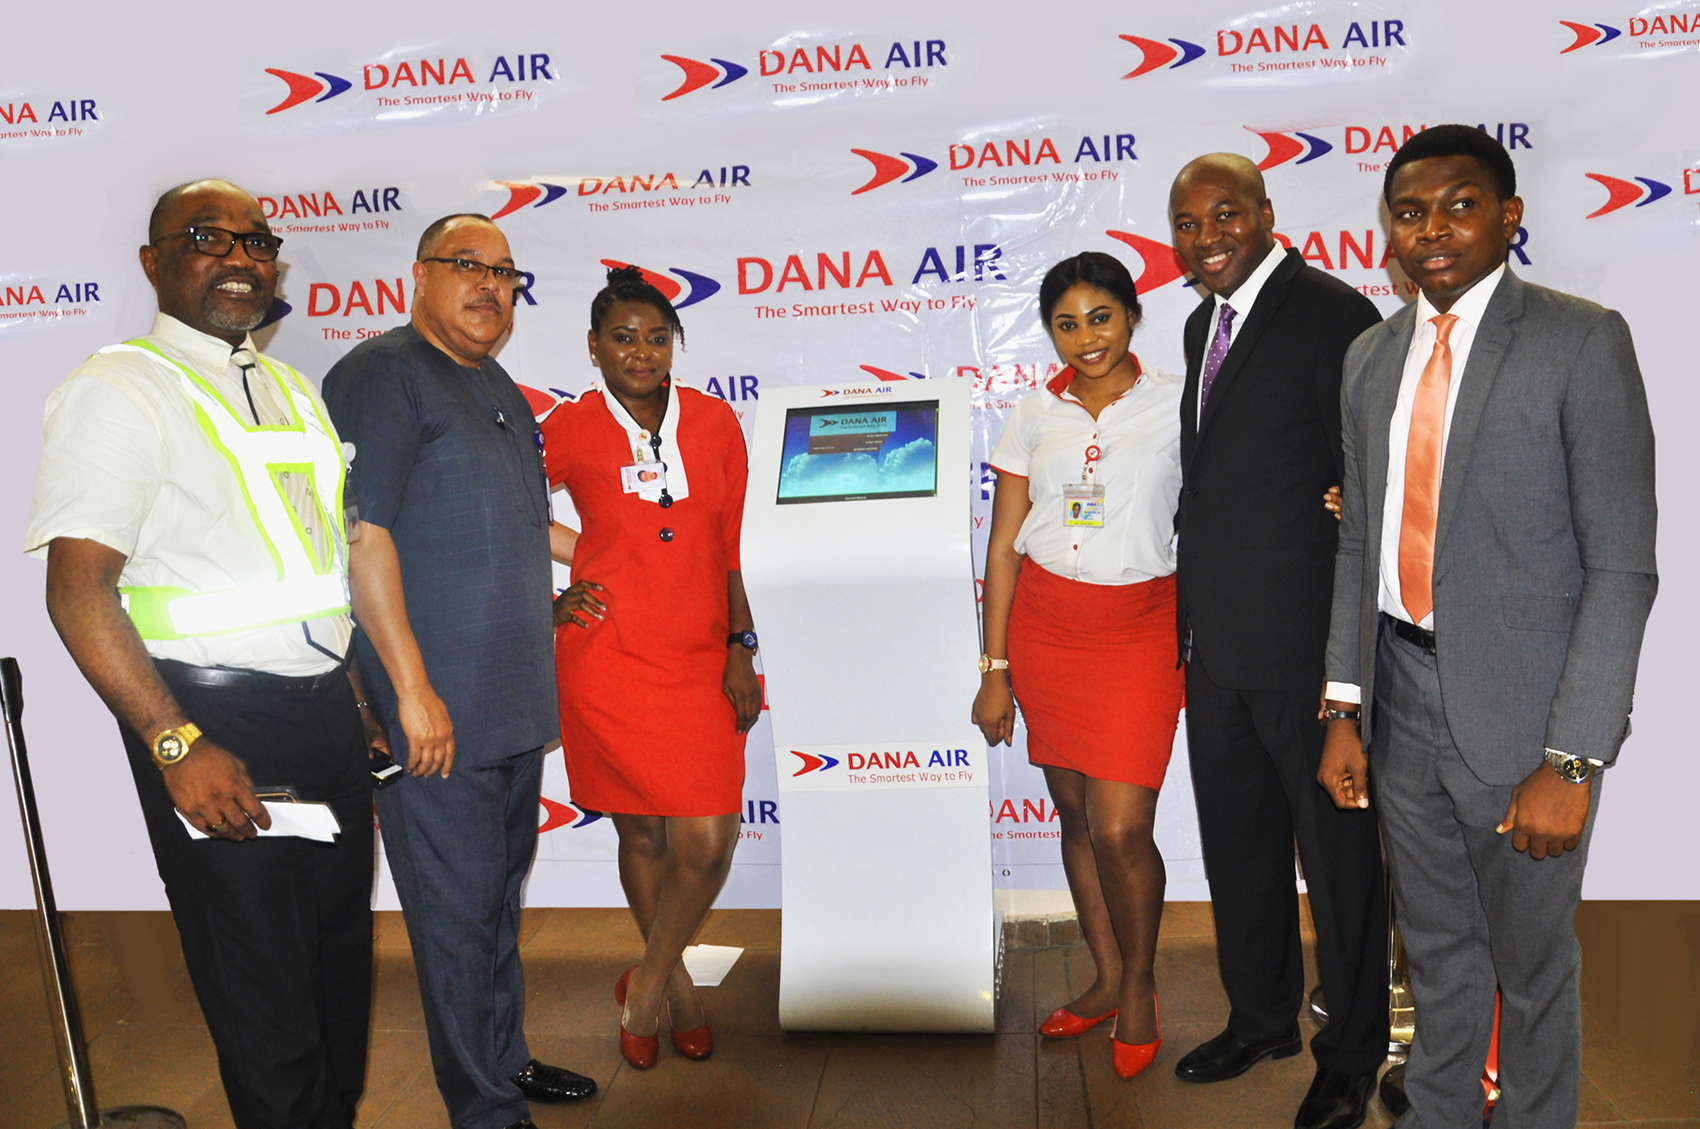 L-R: Dana Air's Head of Ground Operations Mr Emem Ettete, Captain Jari Williams, CEO of MMA2, Juliet Ogbeche, Customer Service Agent, Edekobi Stella, Mr. Obi Mbanuzuo Accountable Manager of Dana Air, and Kingsley Ezenwa Communications Manager, during the launch of Dana Air's Self Service Kiosk at MMA2 Lagos recently